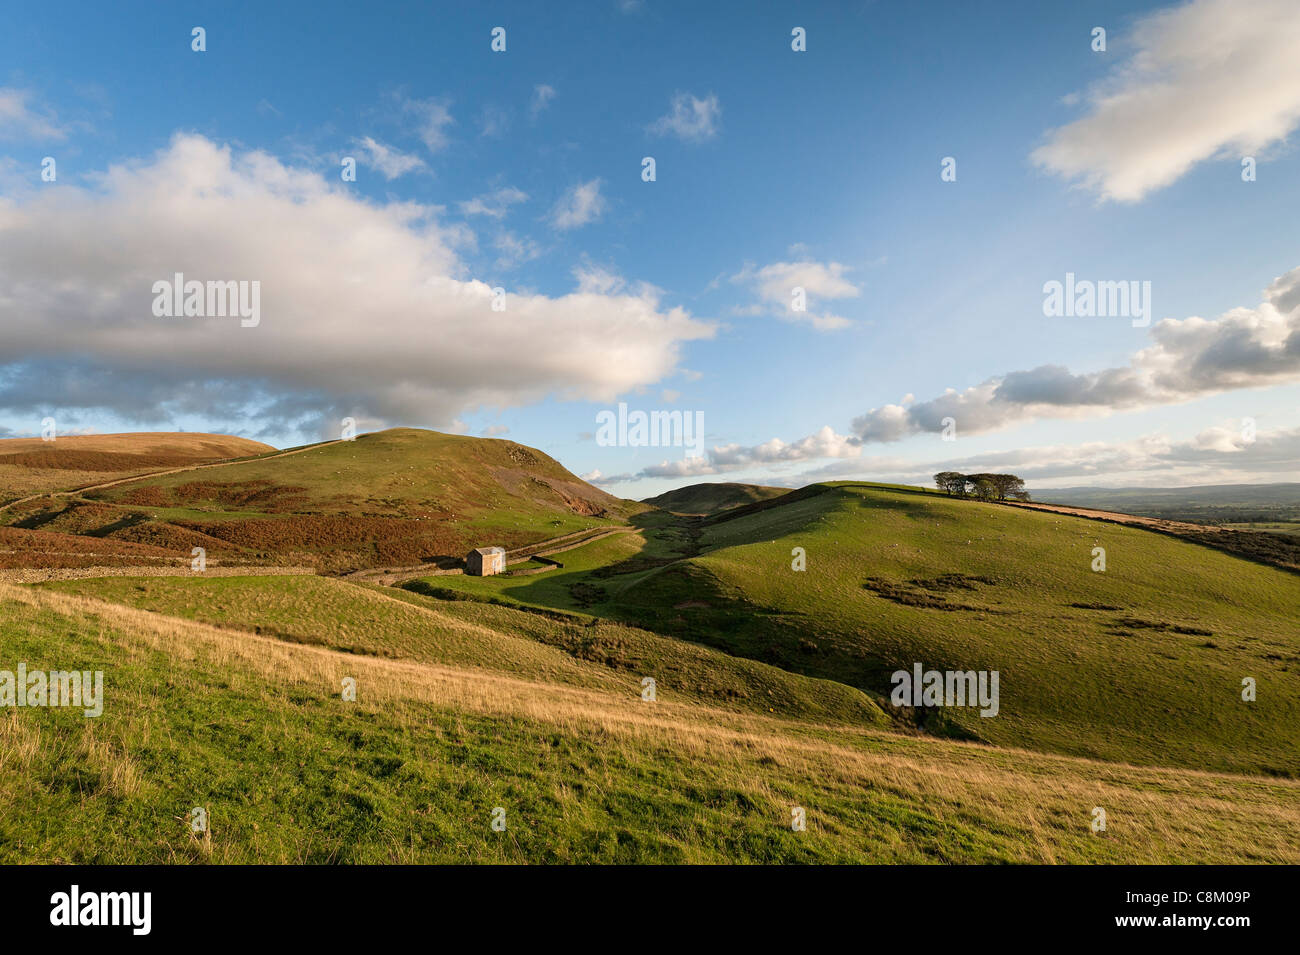 North West Pennines from the Pennine Way near Dufton in Cumbria - Stock Image